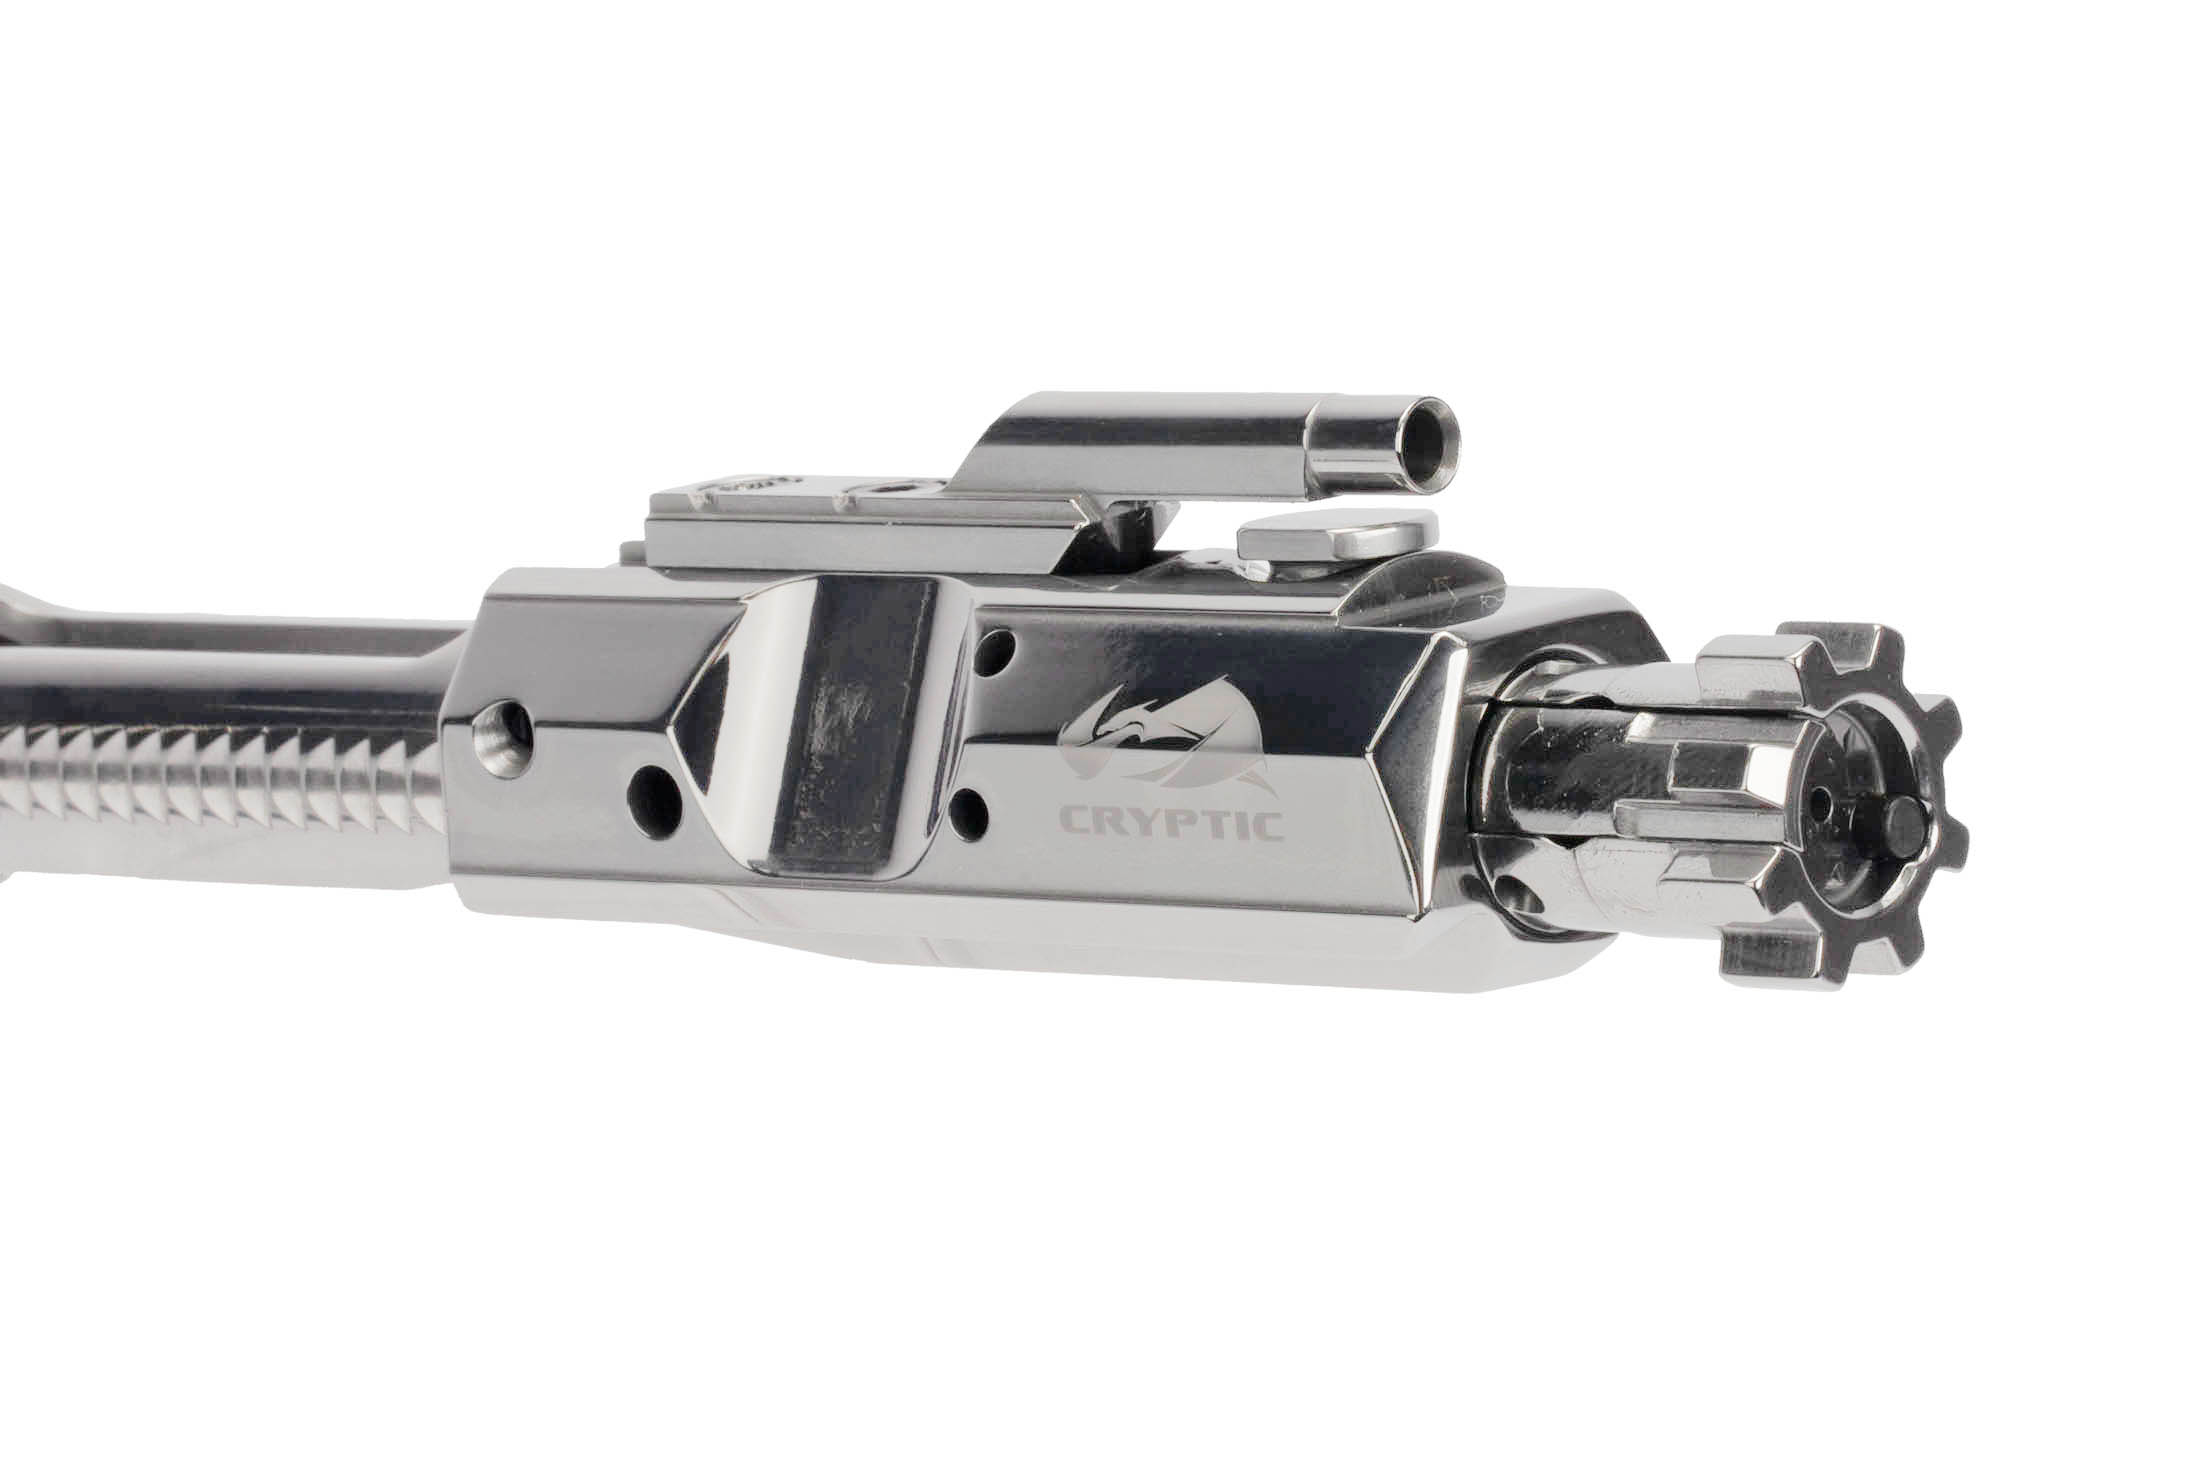 Cryptic Coatings Mystic Silver AR 308 bolt carrier group uses a standard .308 Win magnetic particle inspected bolt assembly